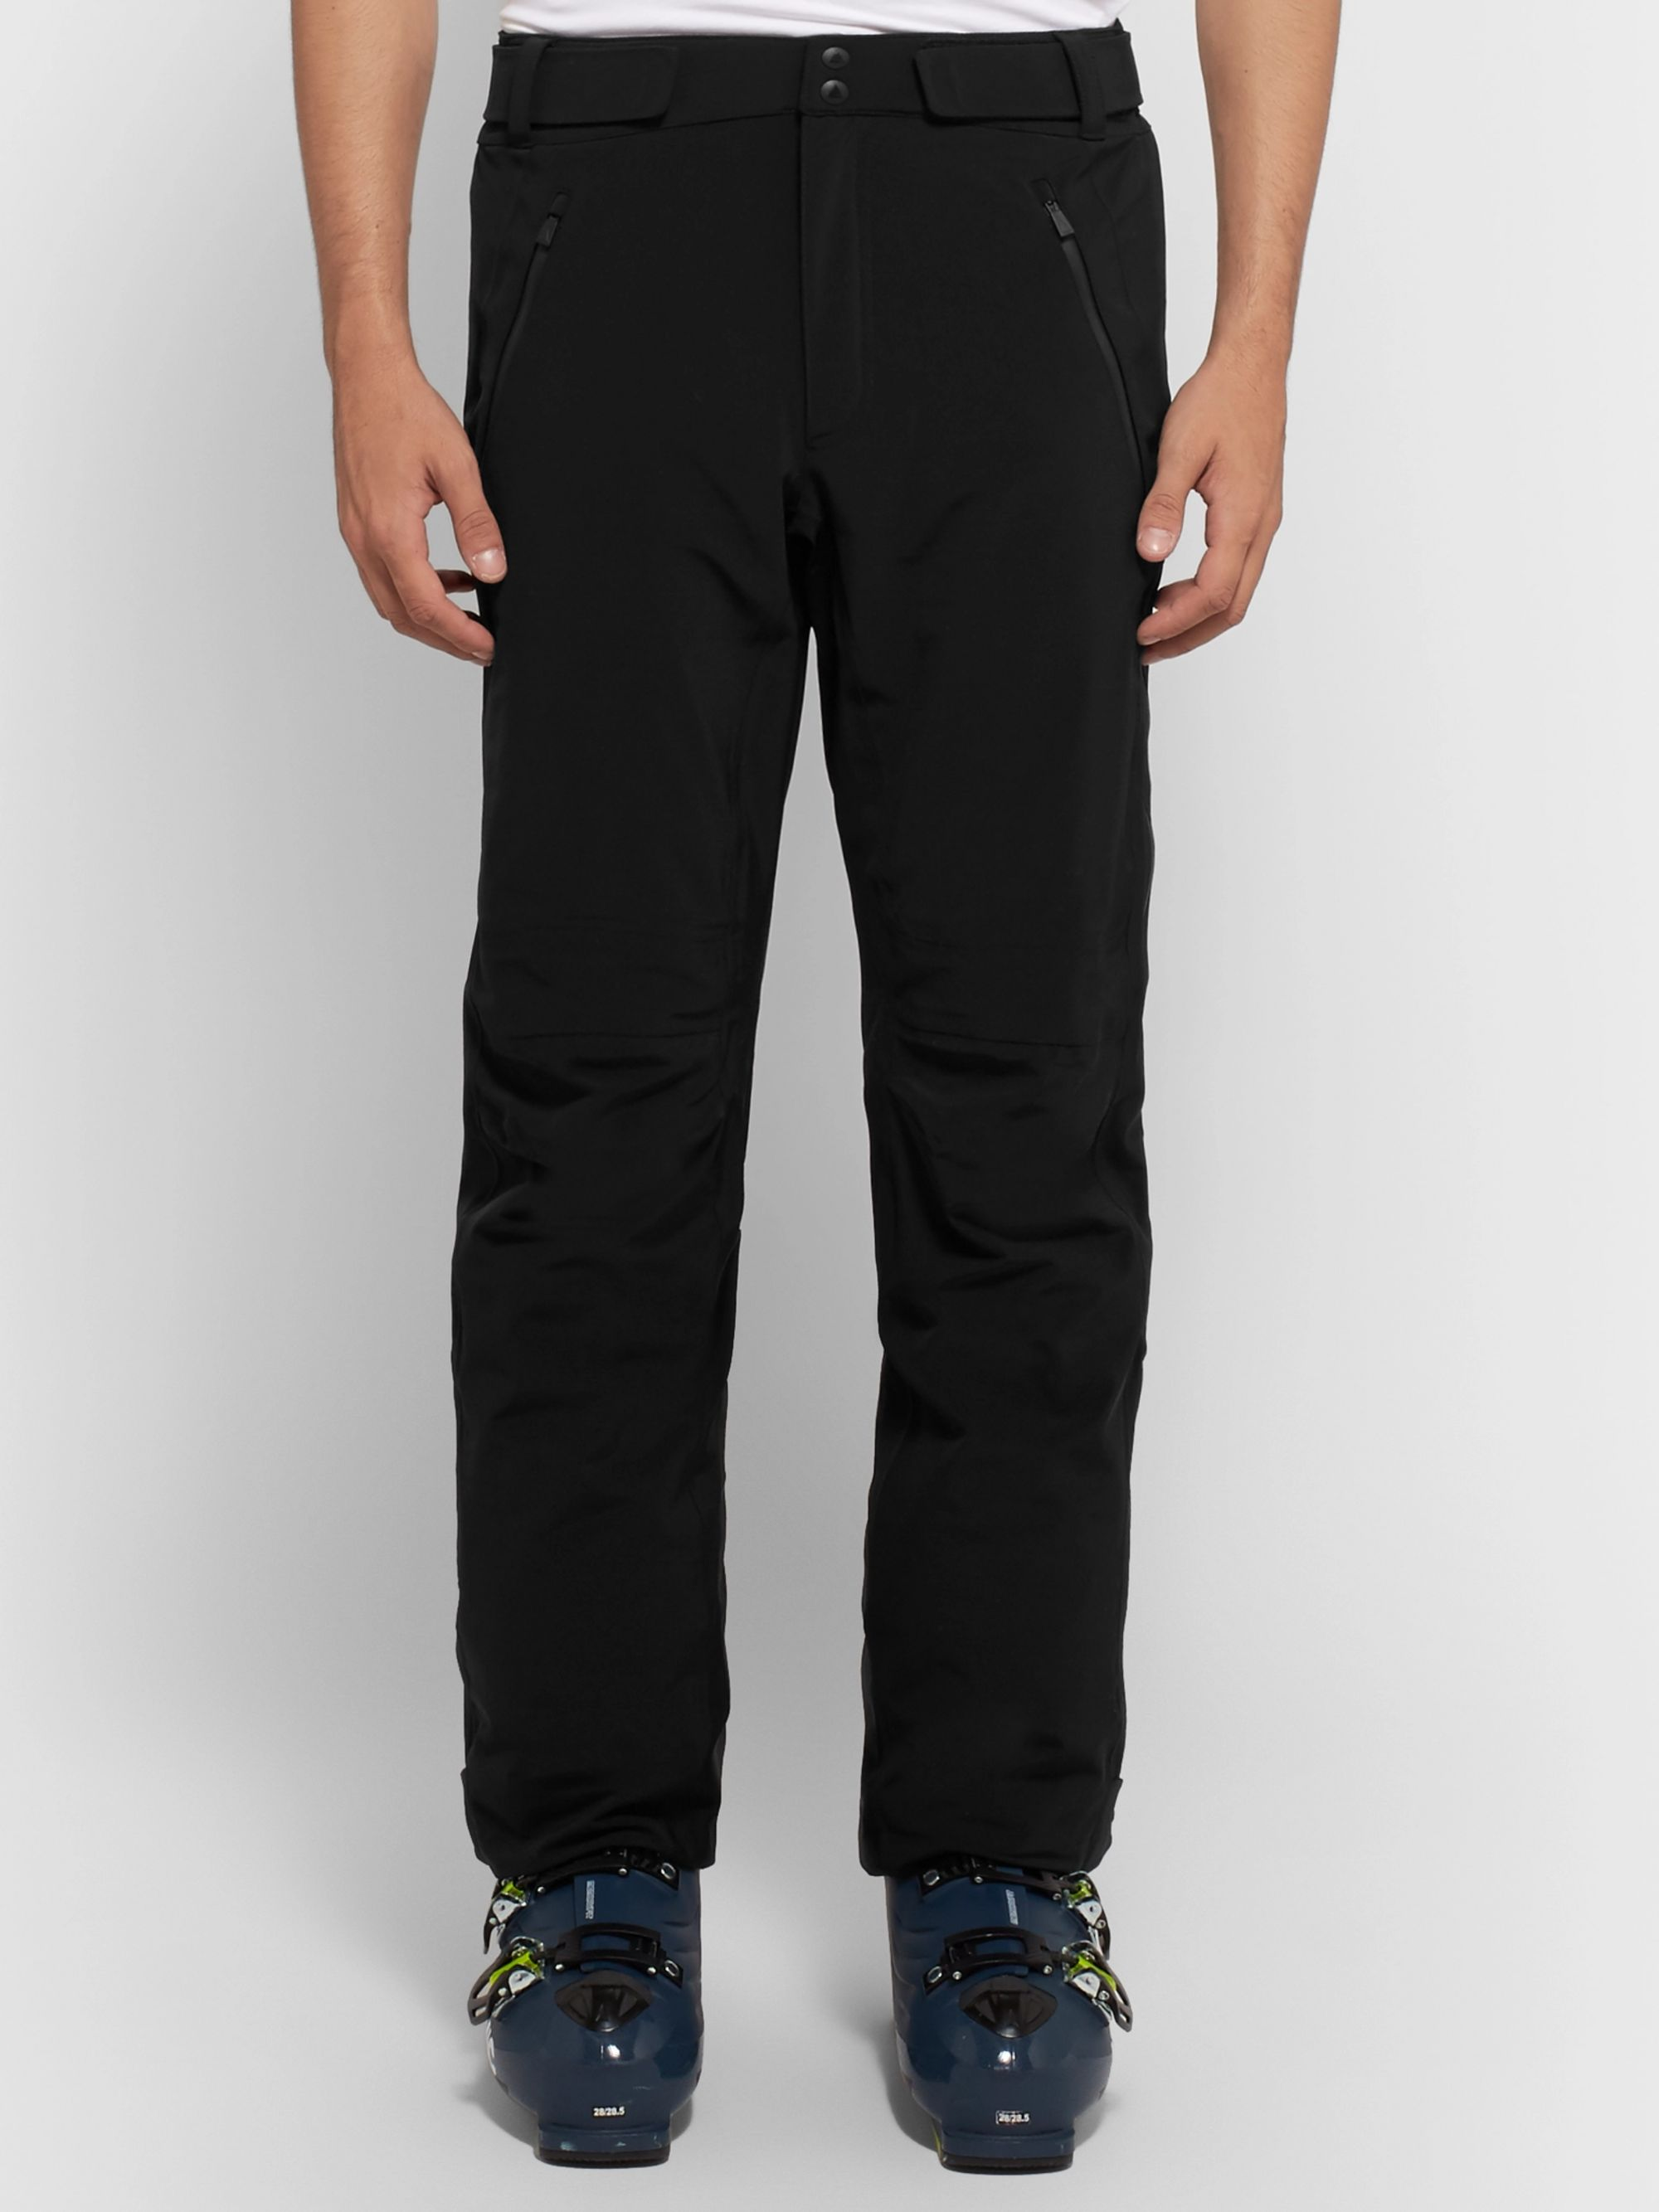 Aztech Mountain Team Aztech Waterproof Ski Trousers